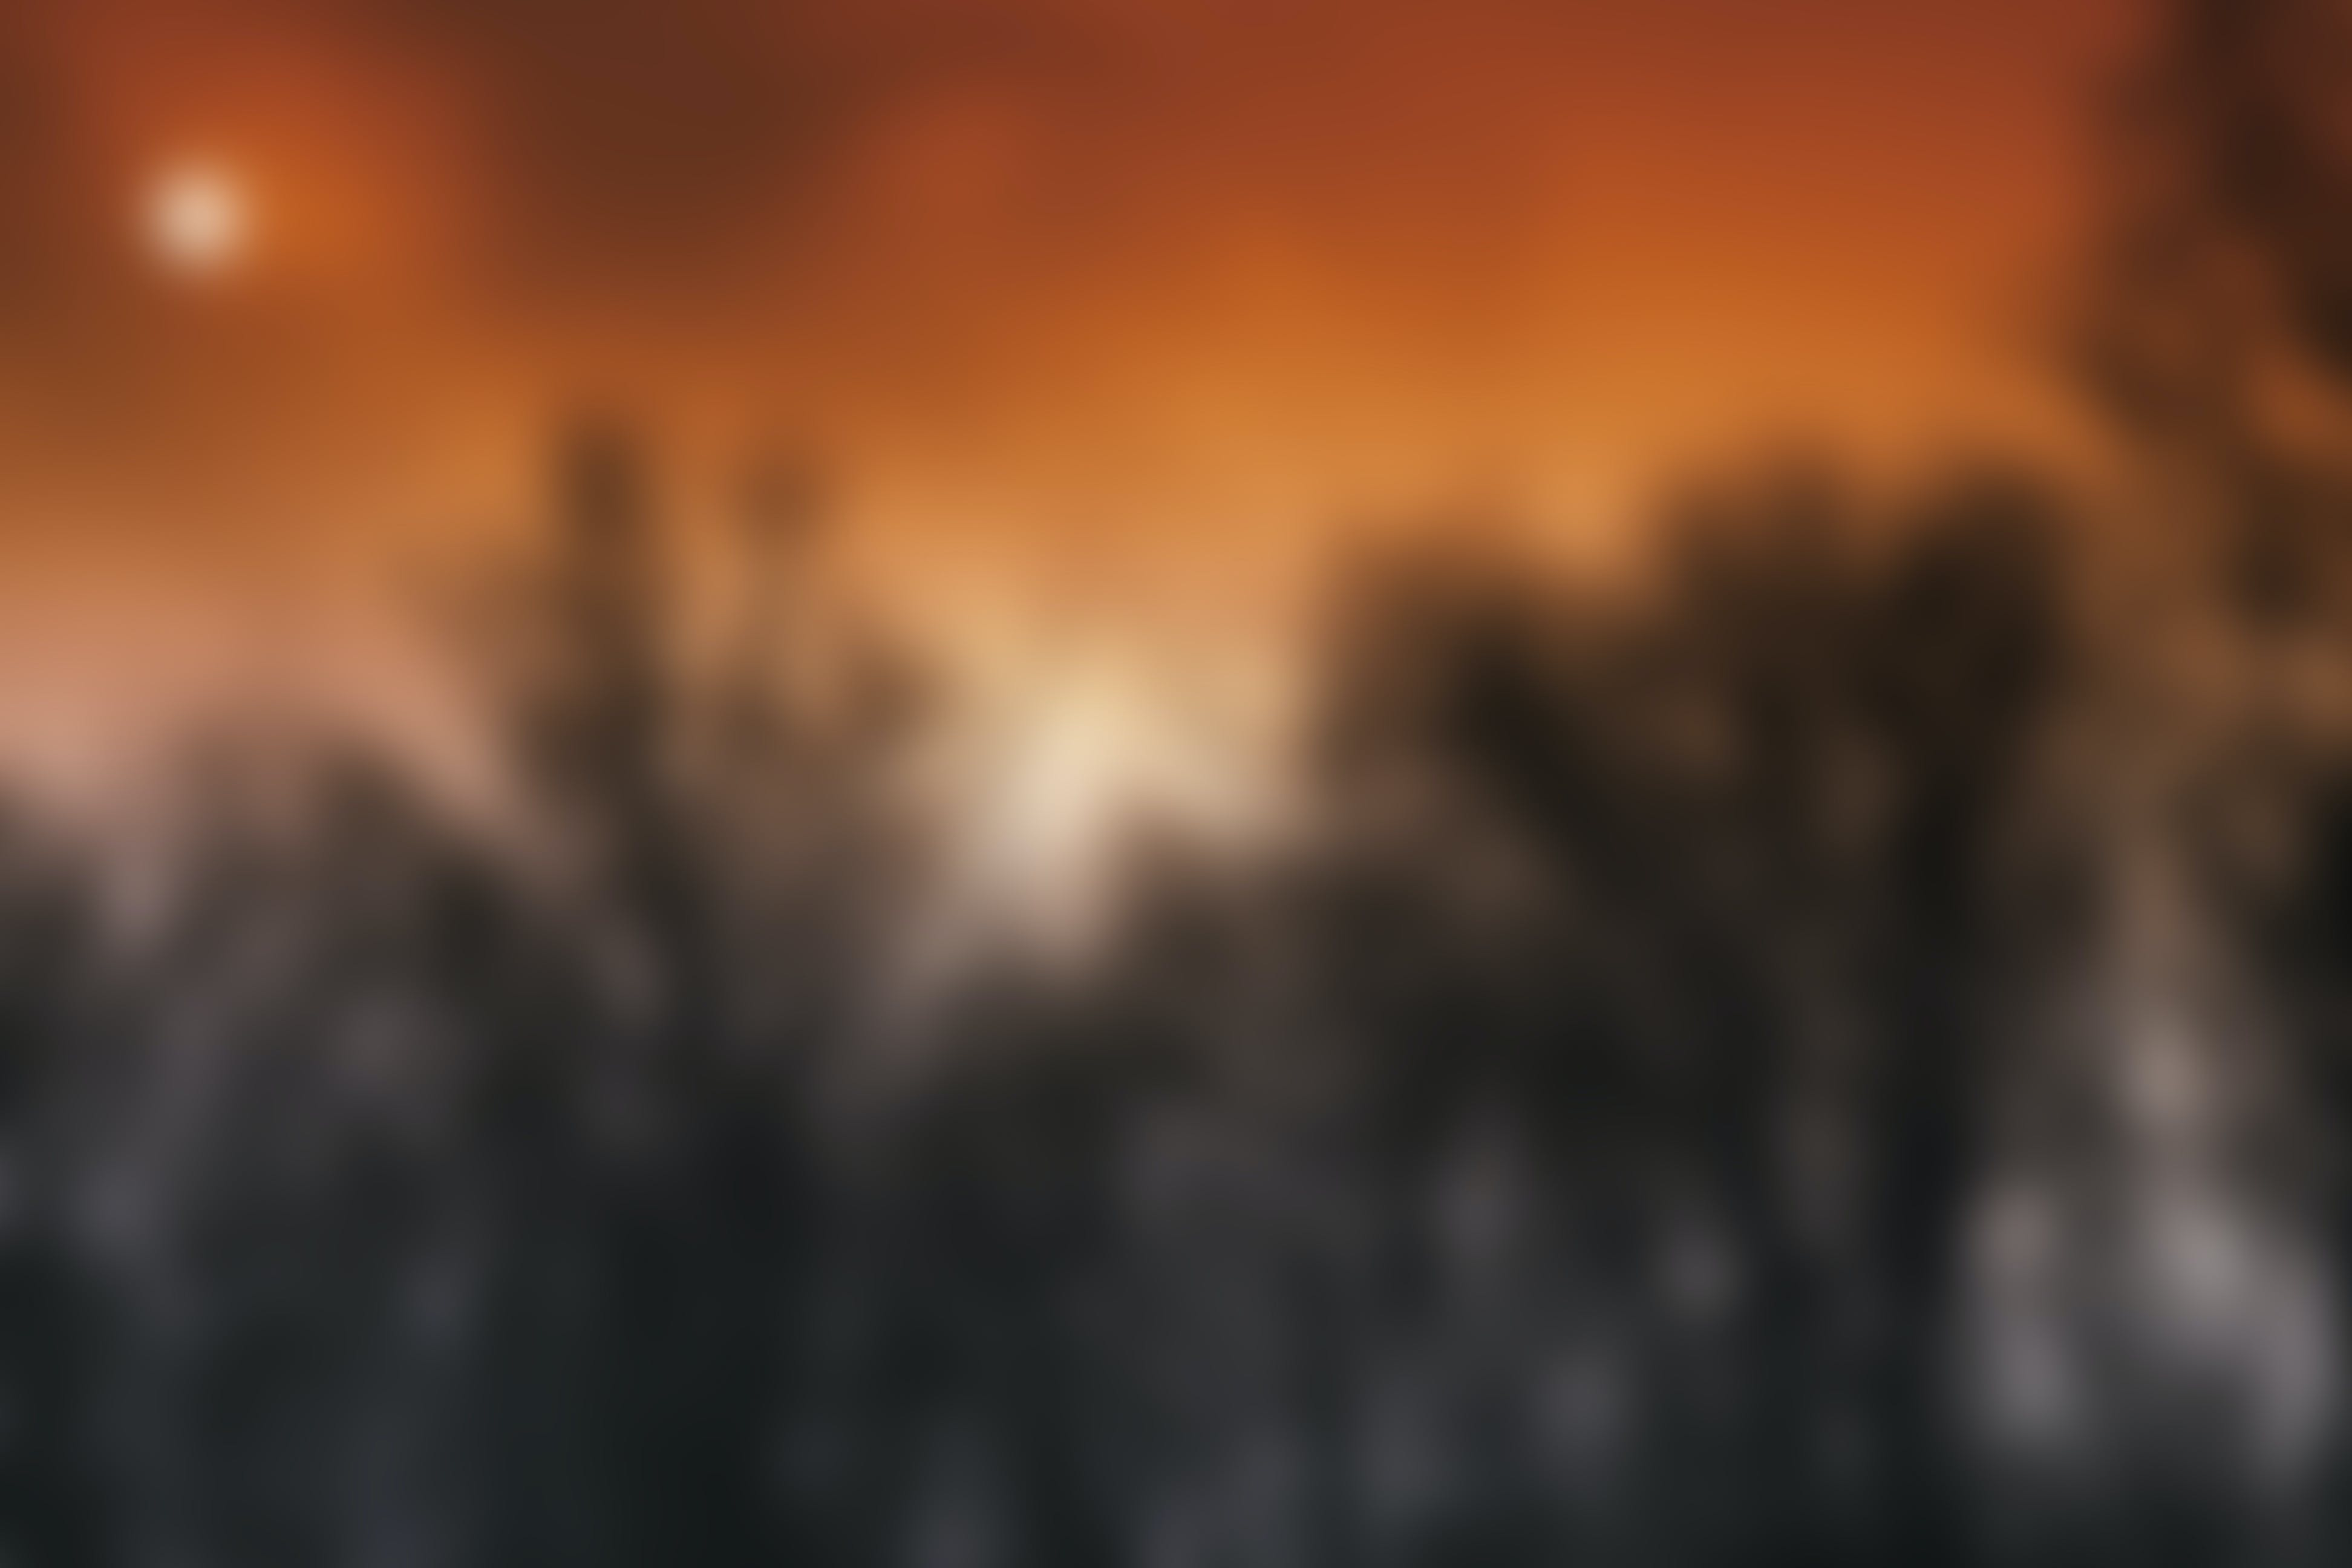 This is a blurred photo of black trees in the foreground and a red sunset in the background. The sun is covered by some clouds.